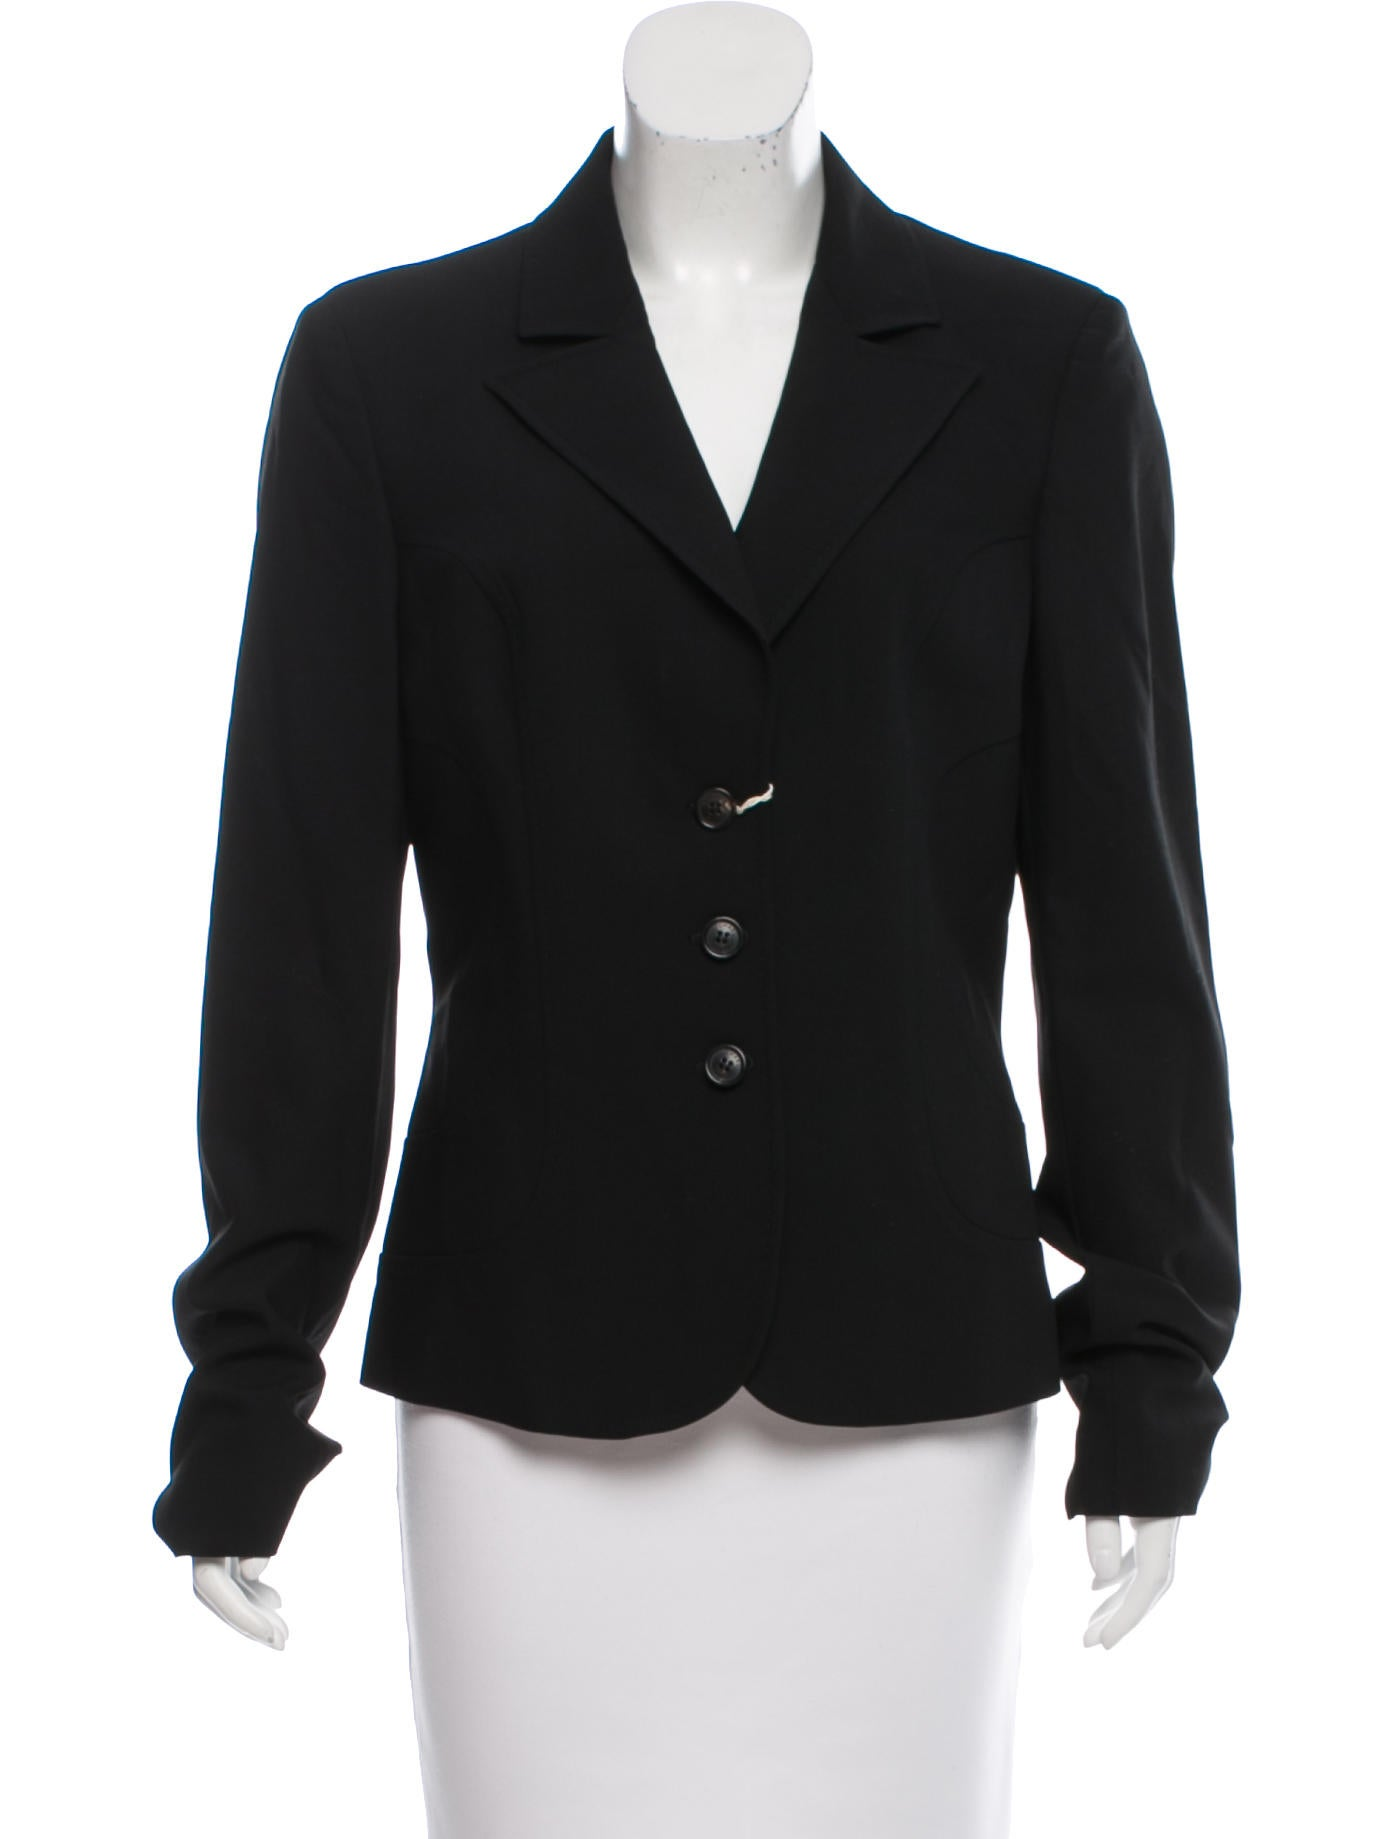 michael kors wool notch lapel blazer w tags clothing mic53007 the realreal. Black Bedroom Furniture Sets. Home Design Ideas